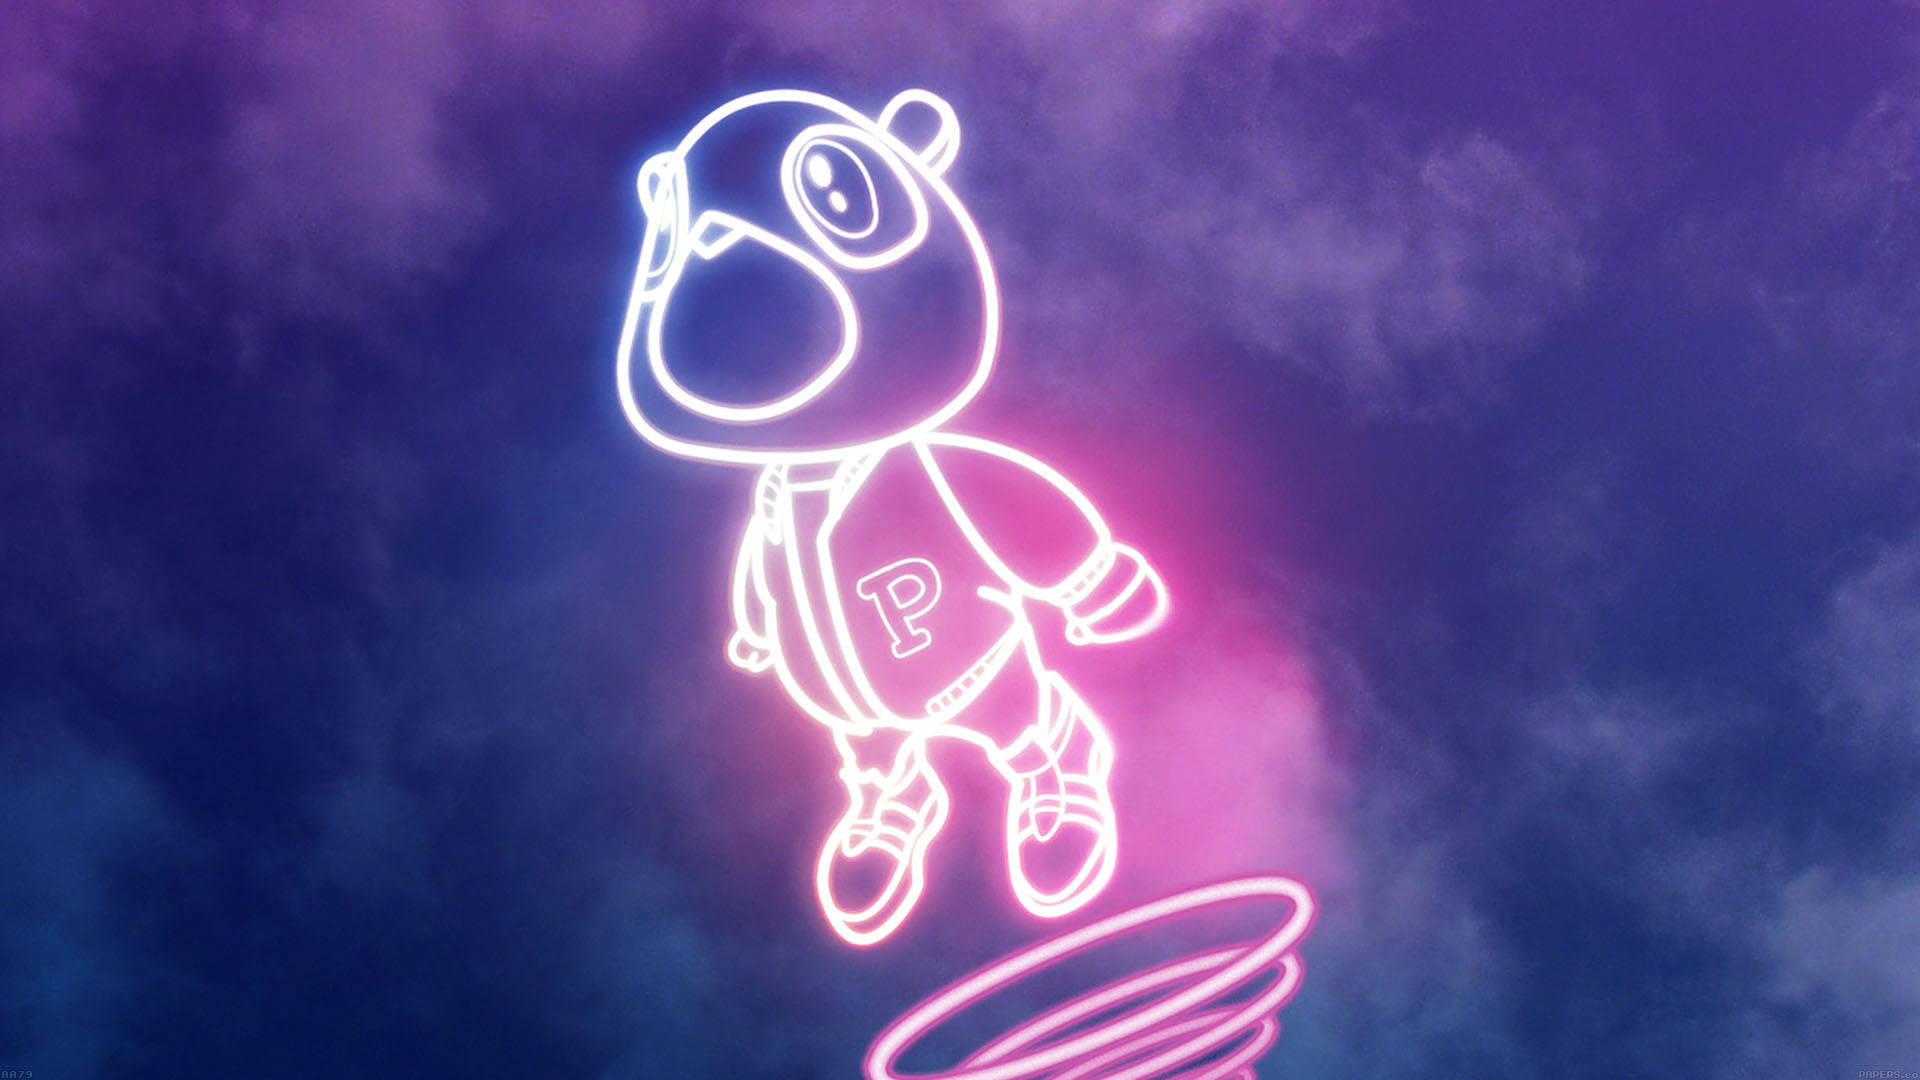 aa79 wallpaper drop out bear of kanye illust music